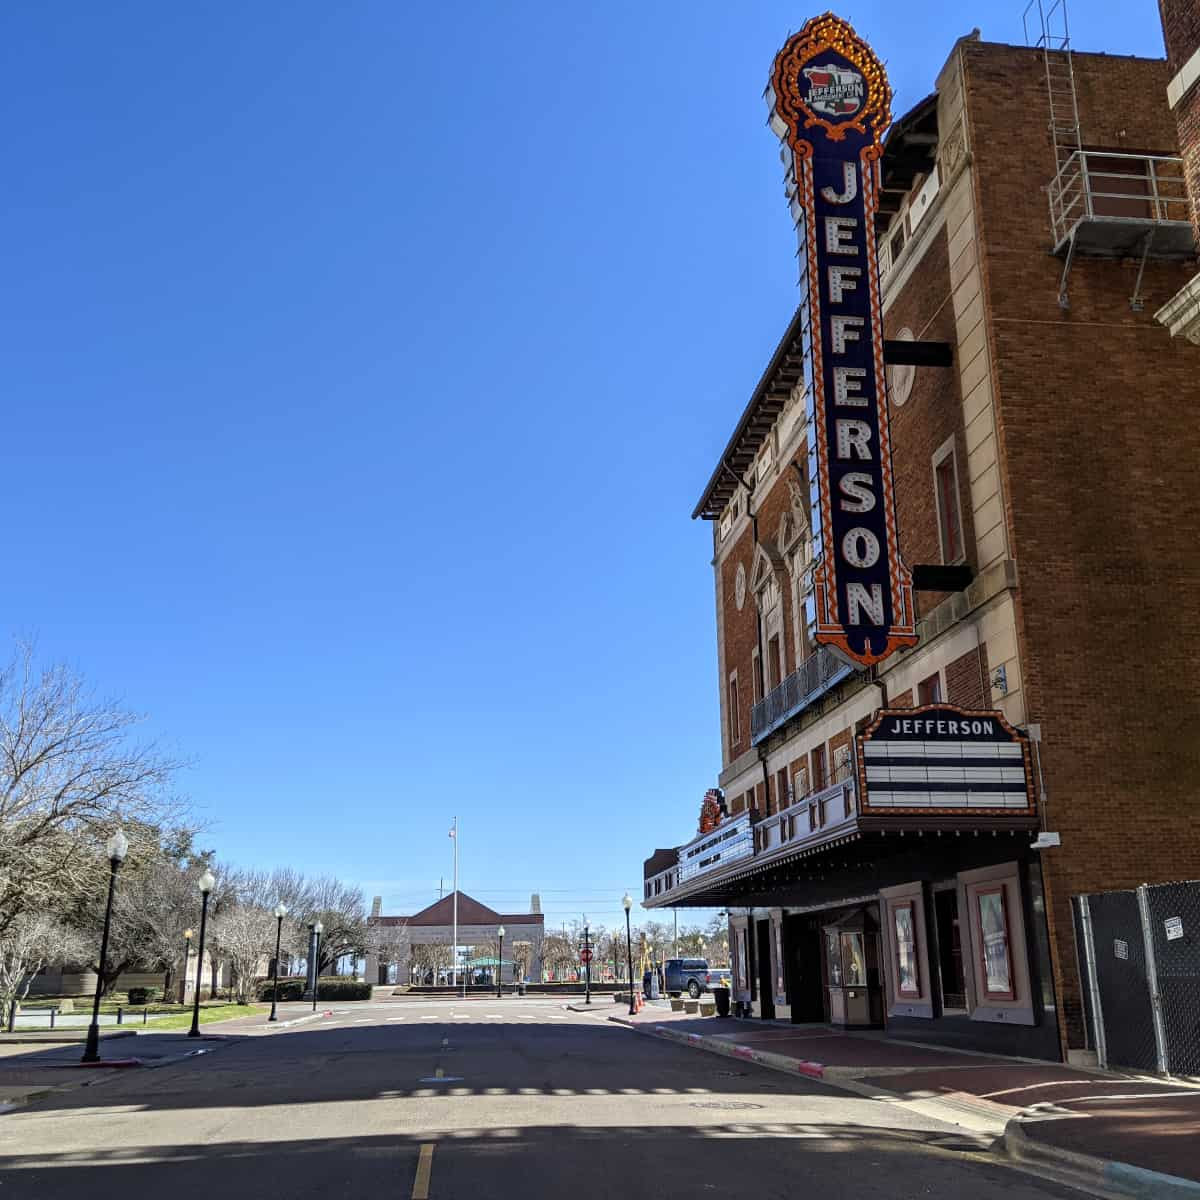 Jefferson Theater in Beaumont